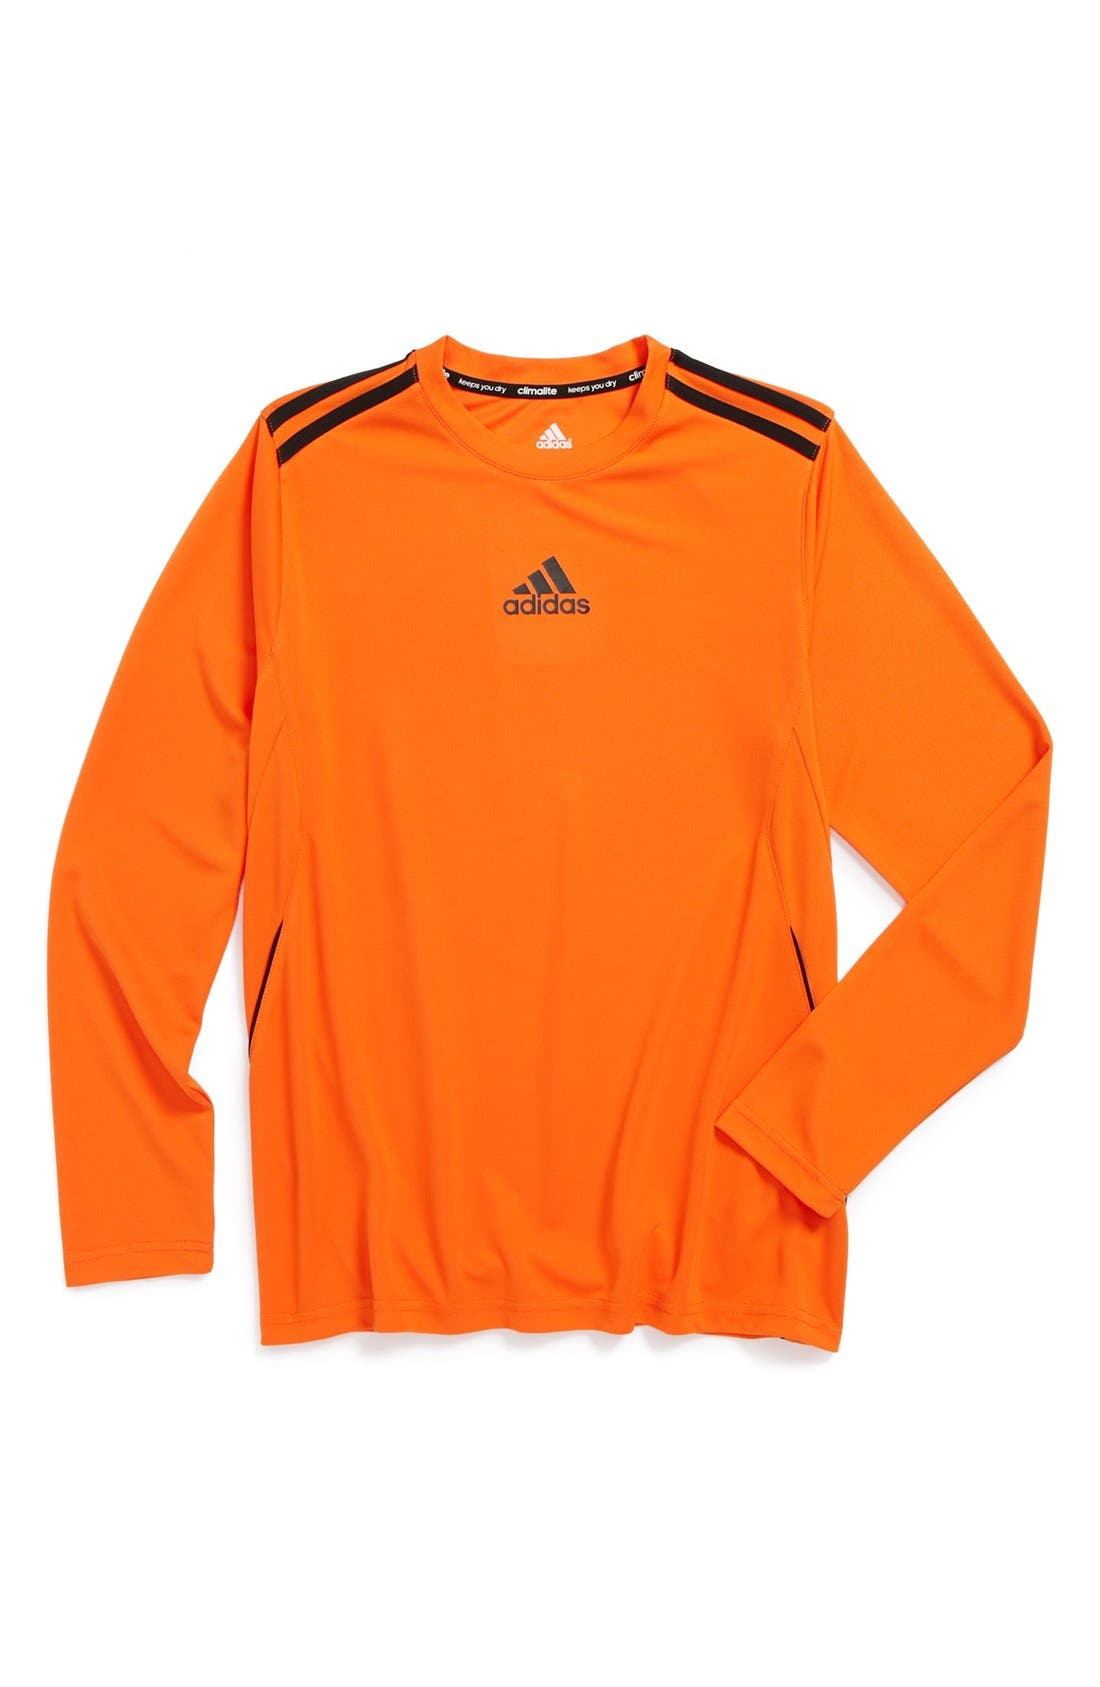 Main Image - adidas ClimaCore Long Sleeve Shirt (Big Boys)